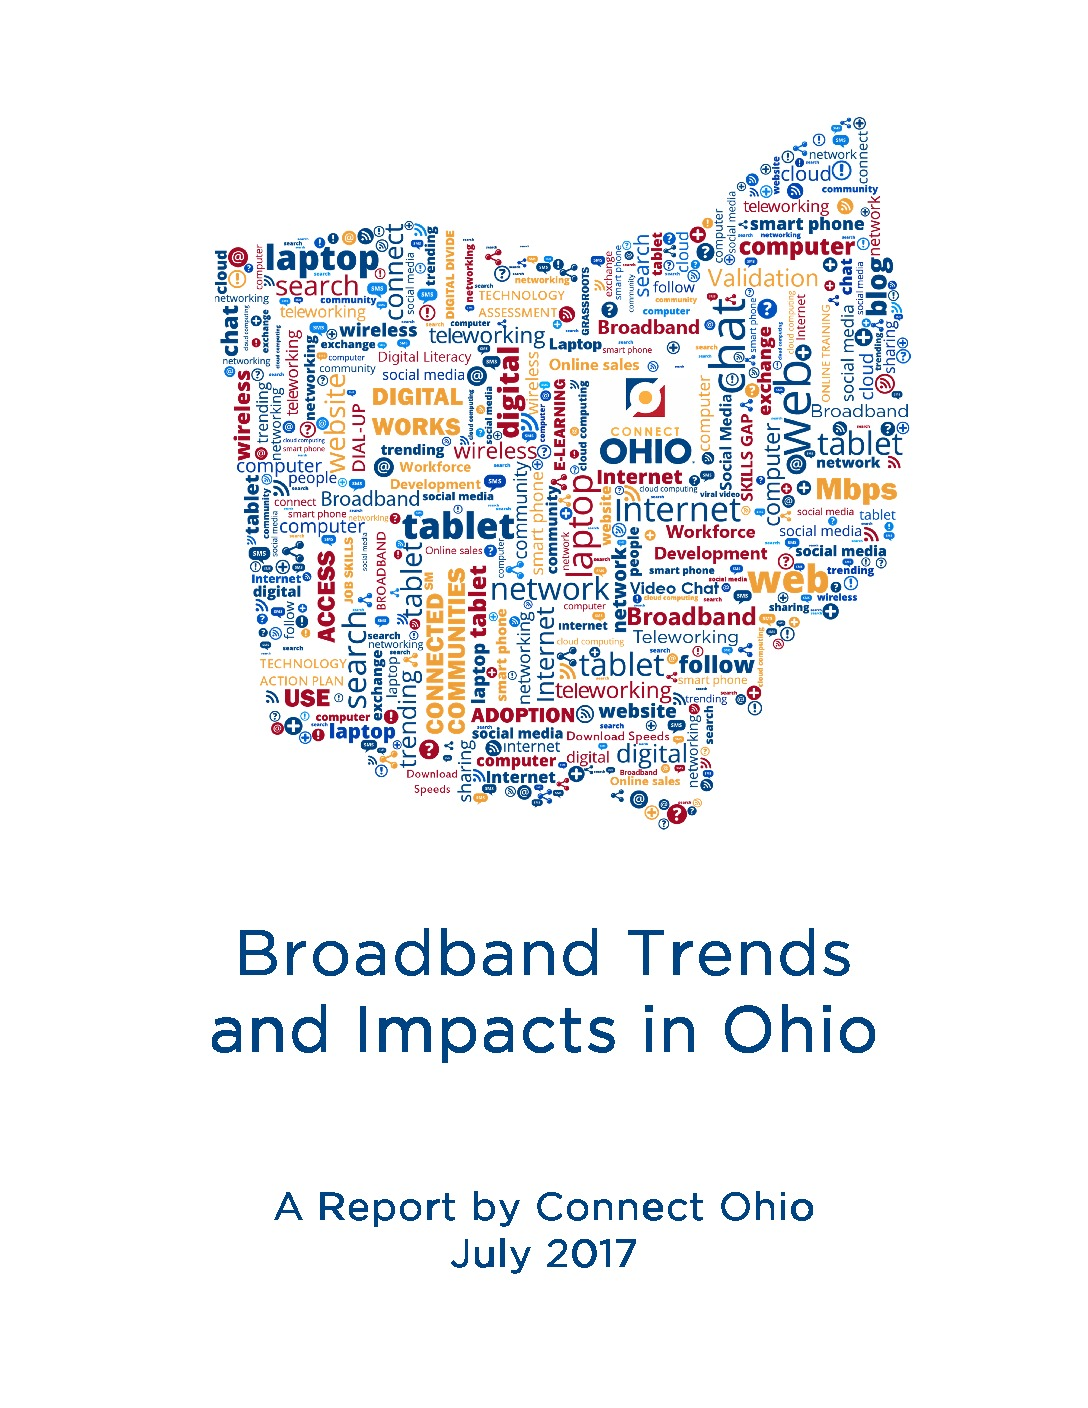 Broadband Trends and Impacts in Ohio